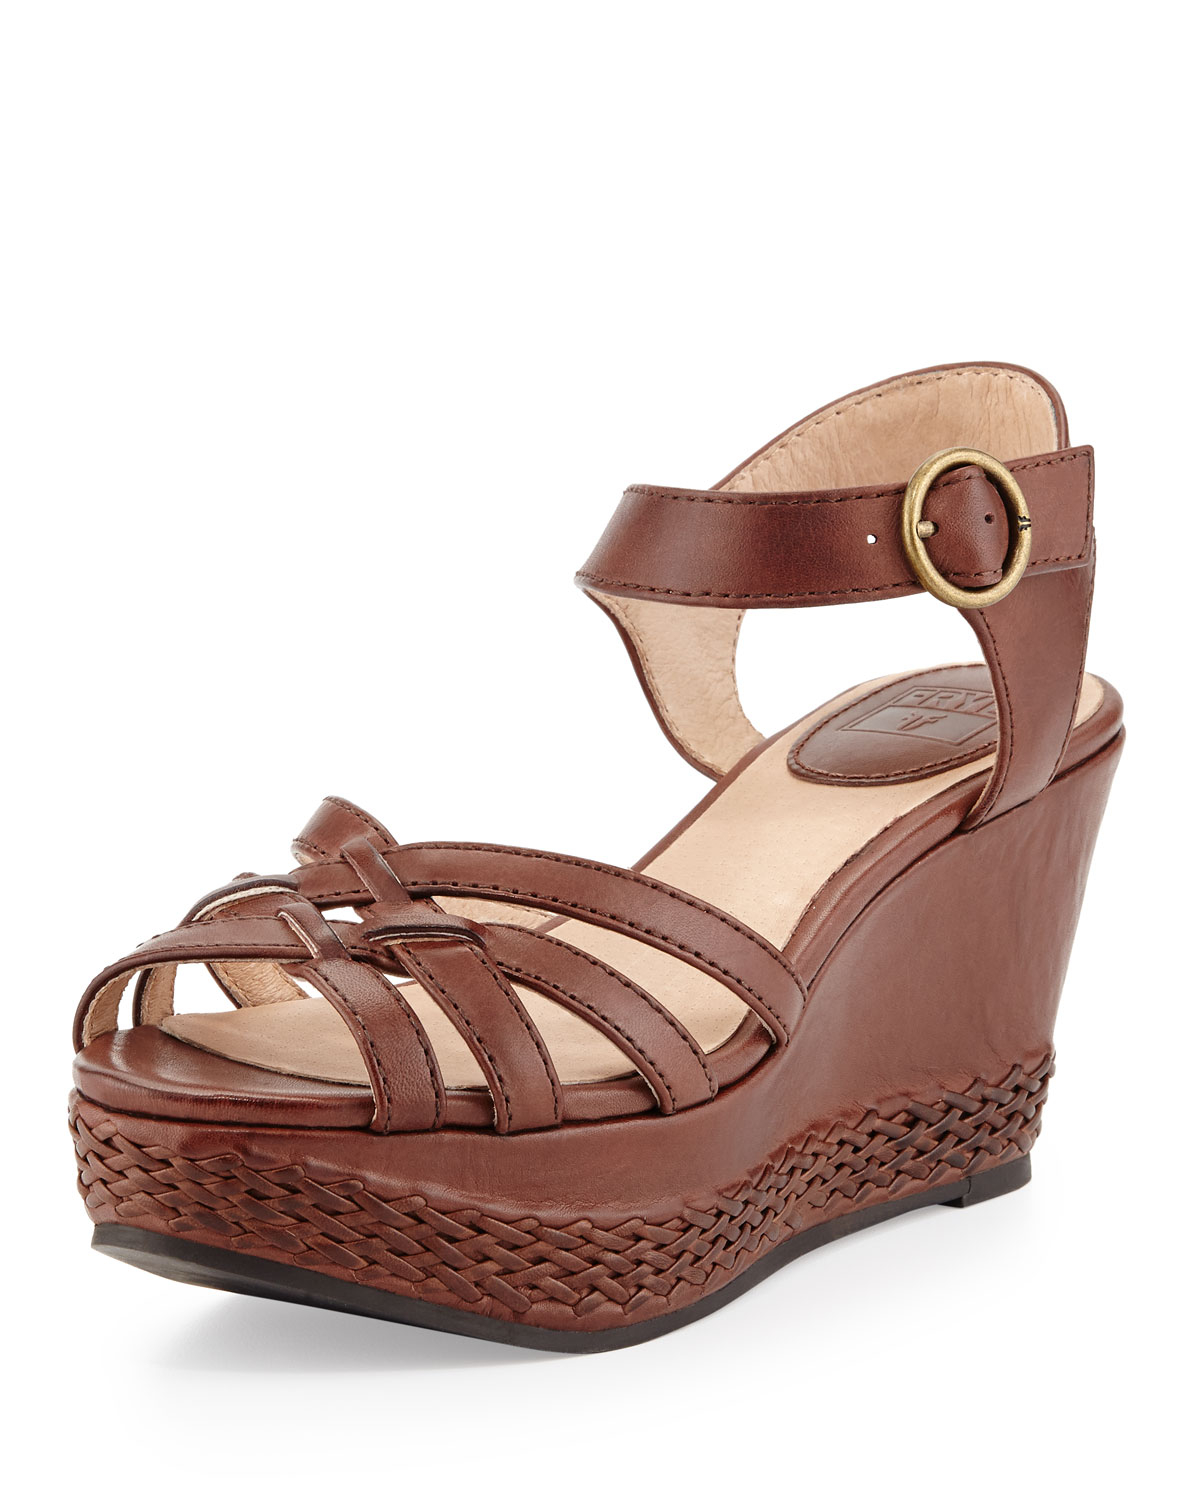 Frye Carlie 2 Piece Woven Leather Wedge Sandal In 7 Brown